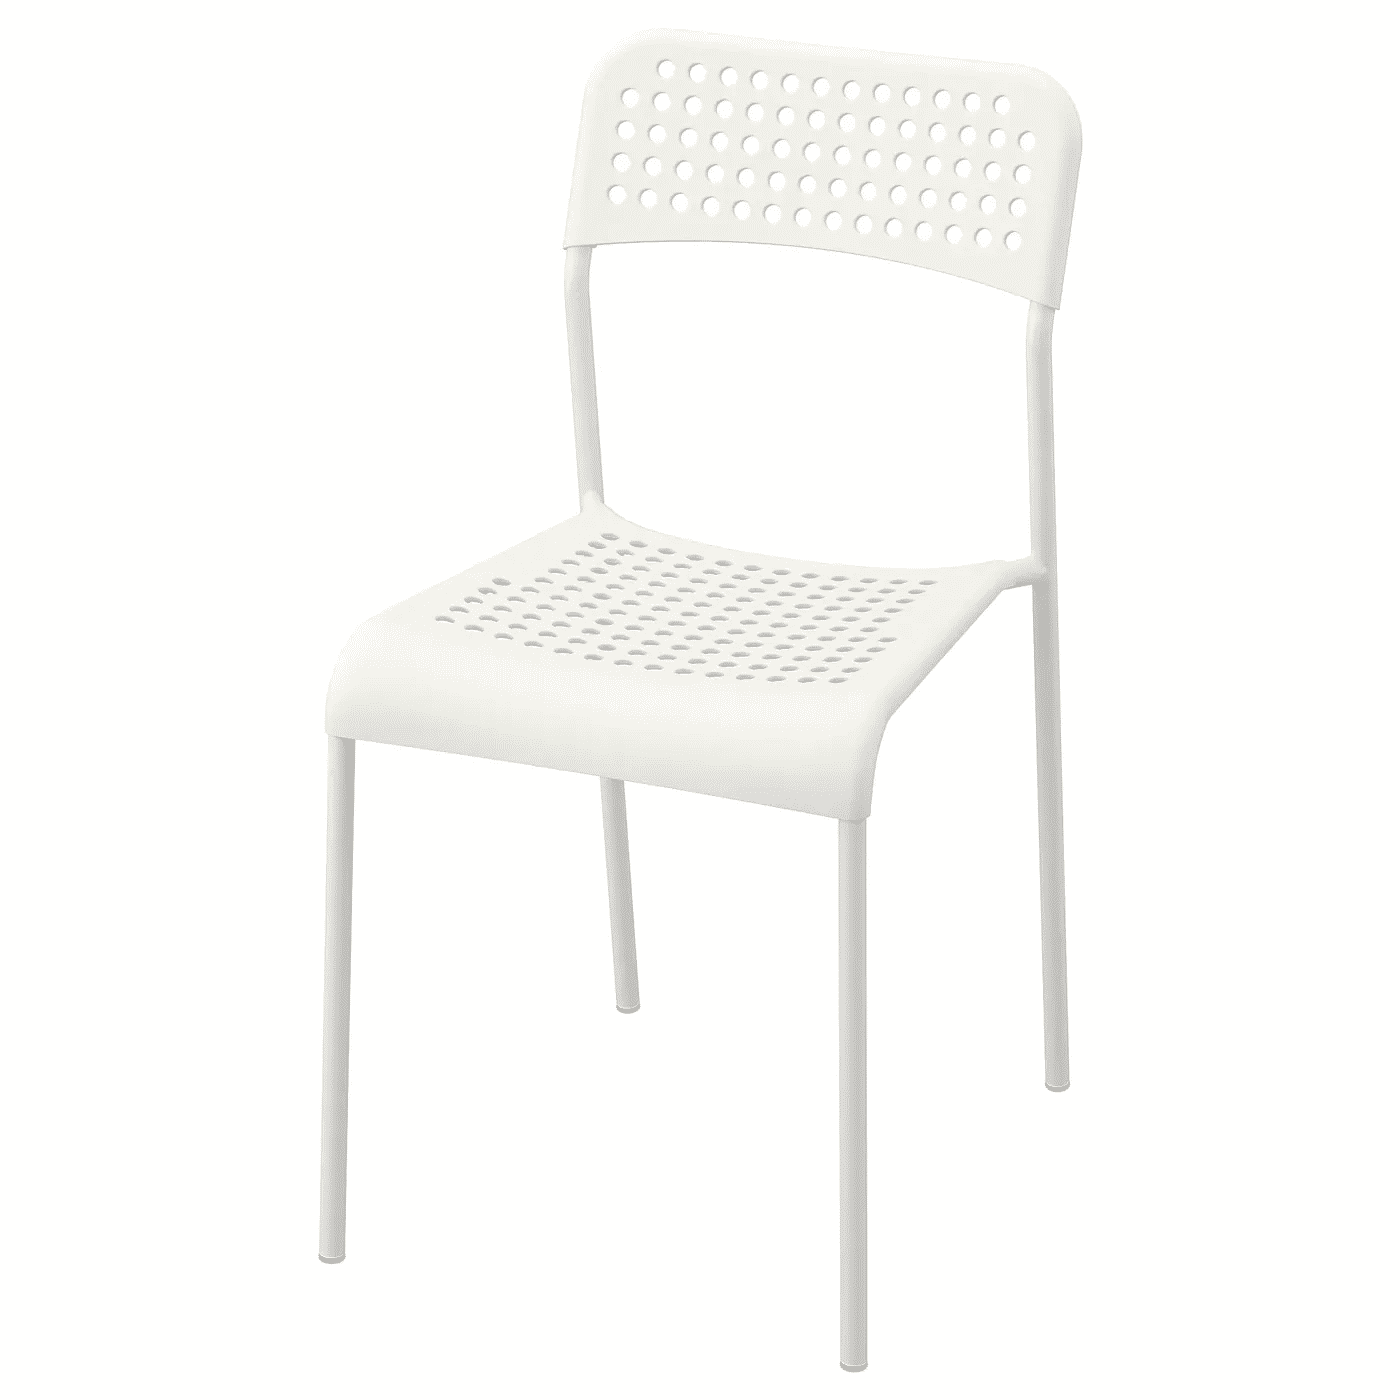 White ADDE Chair